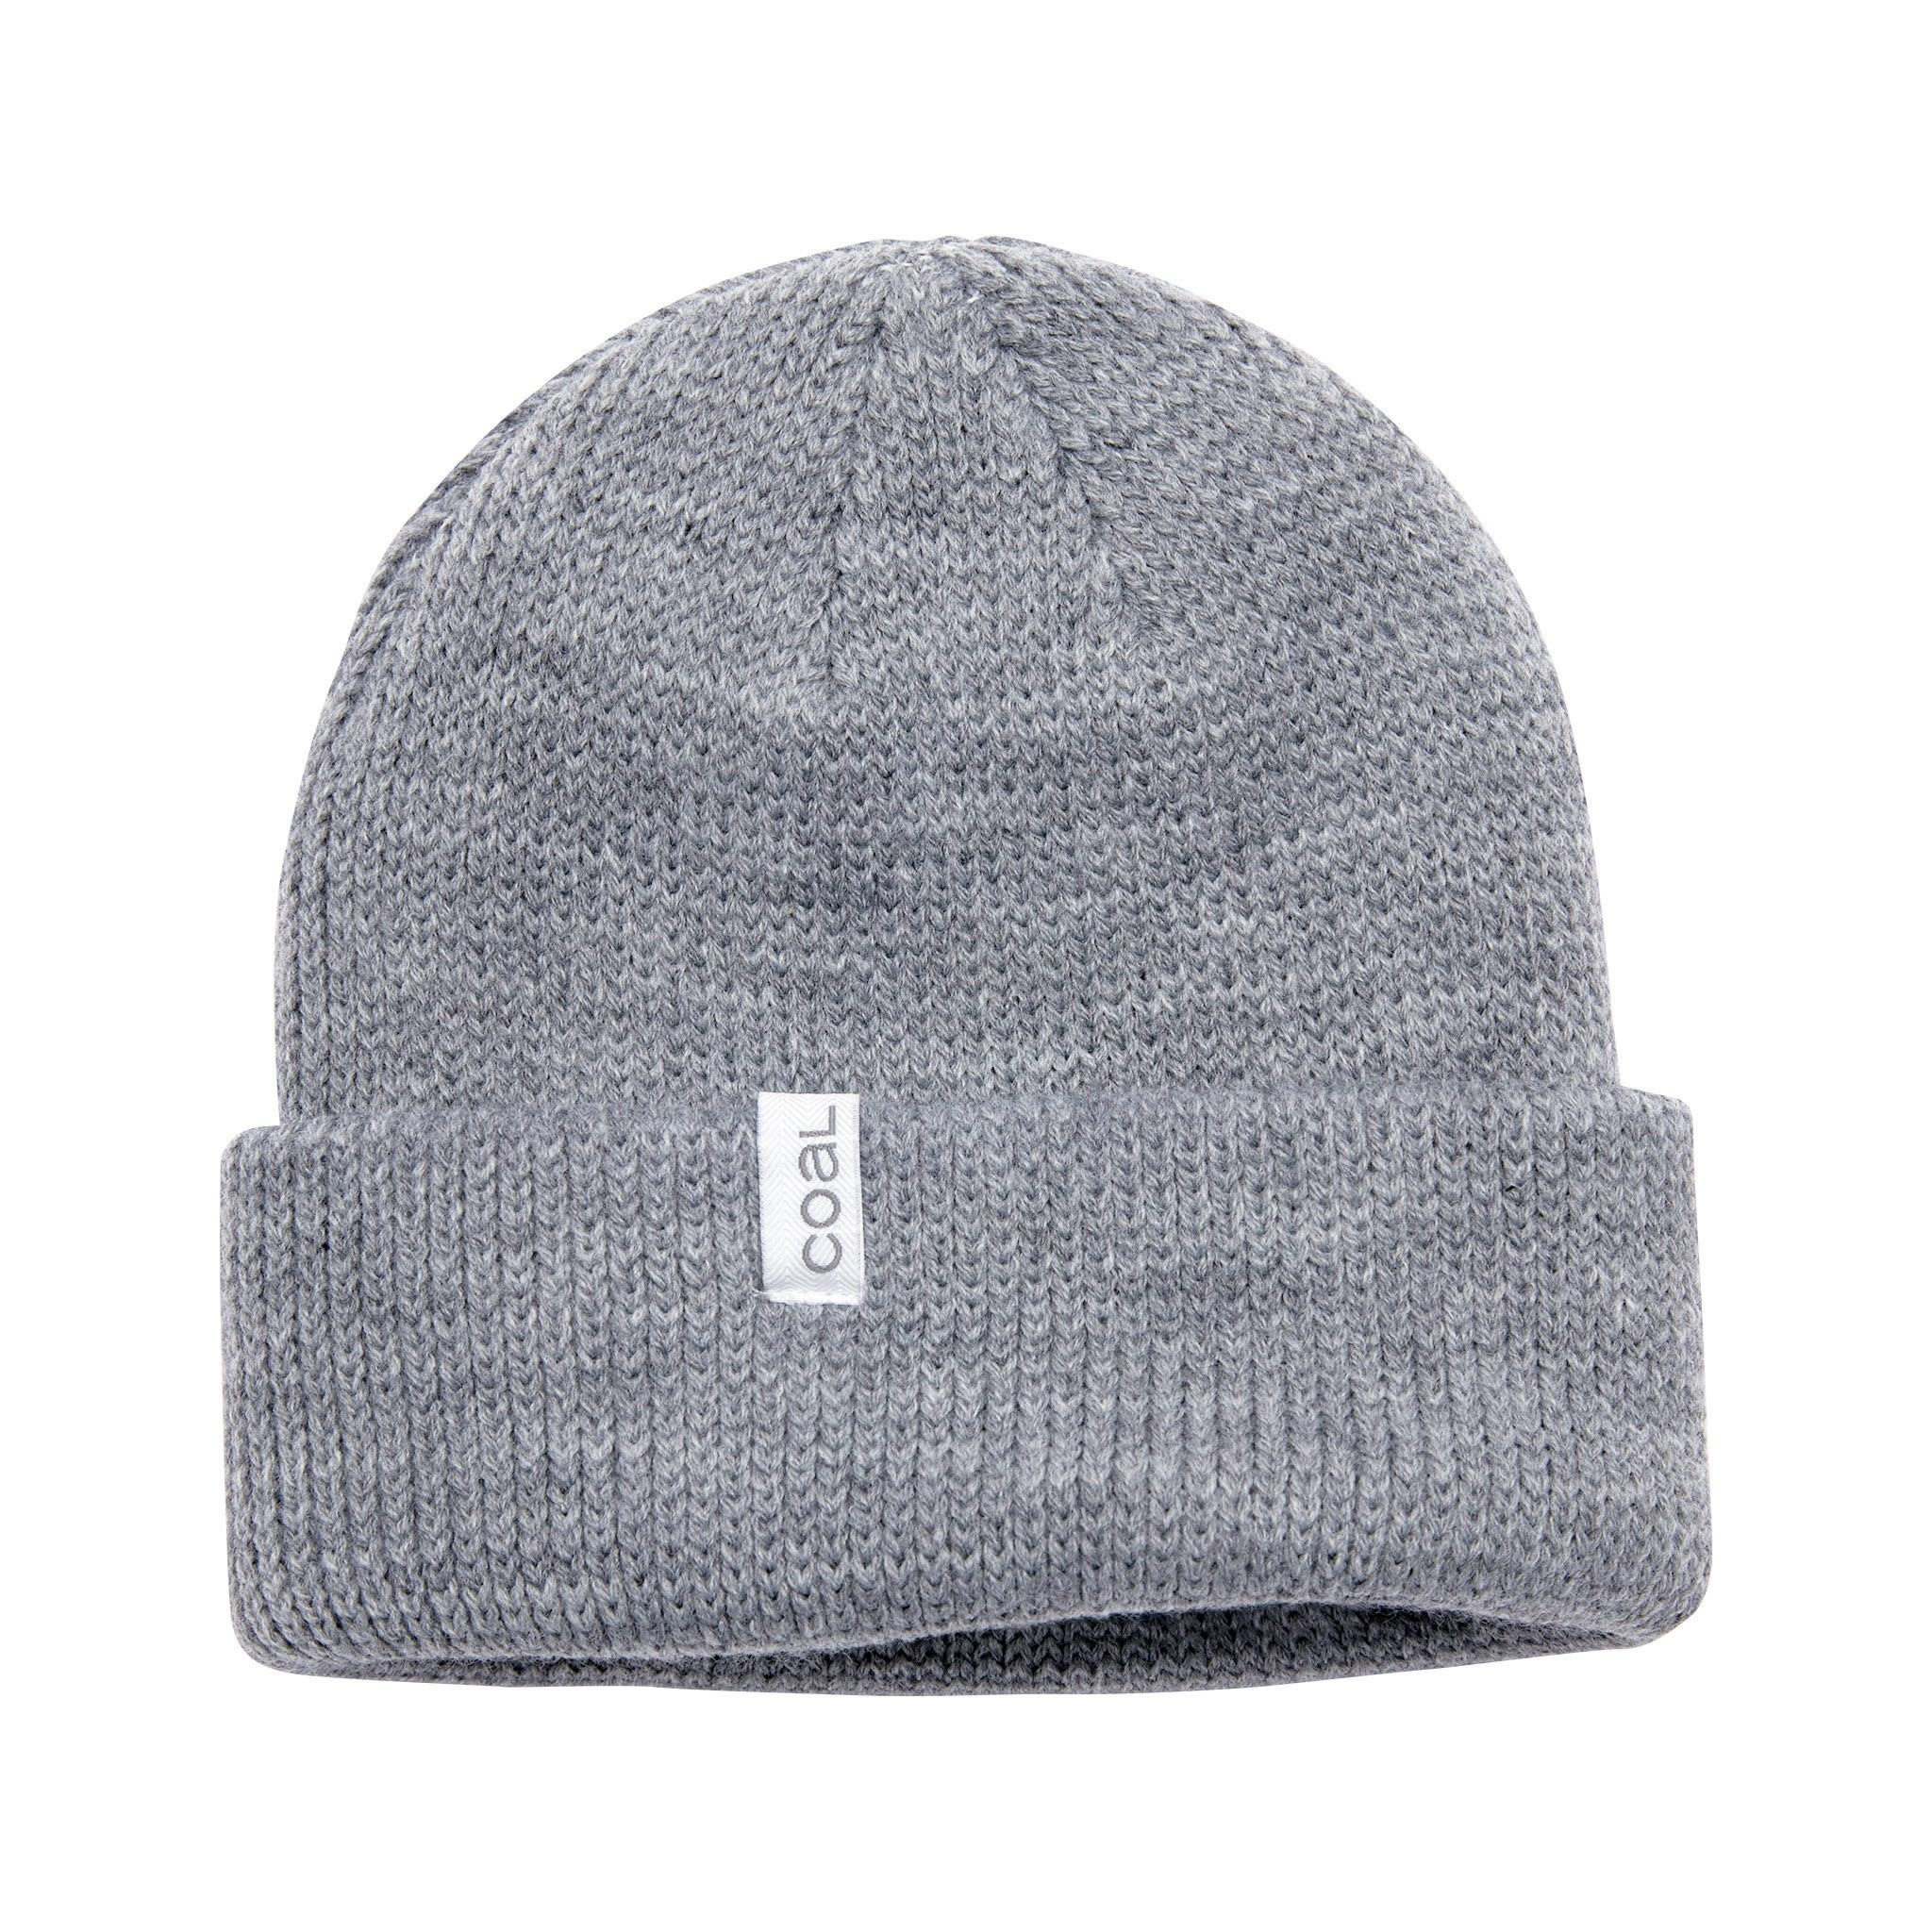 Coal Coal The Frena Thick Knit Cuffed Beanie